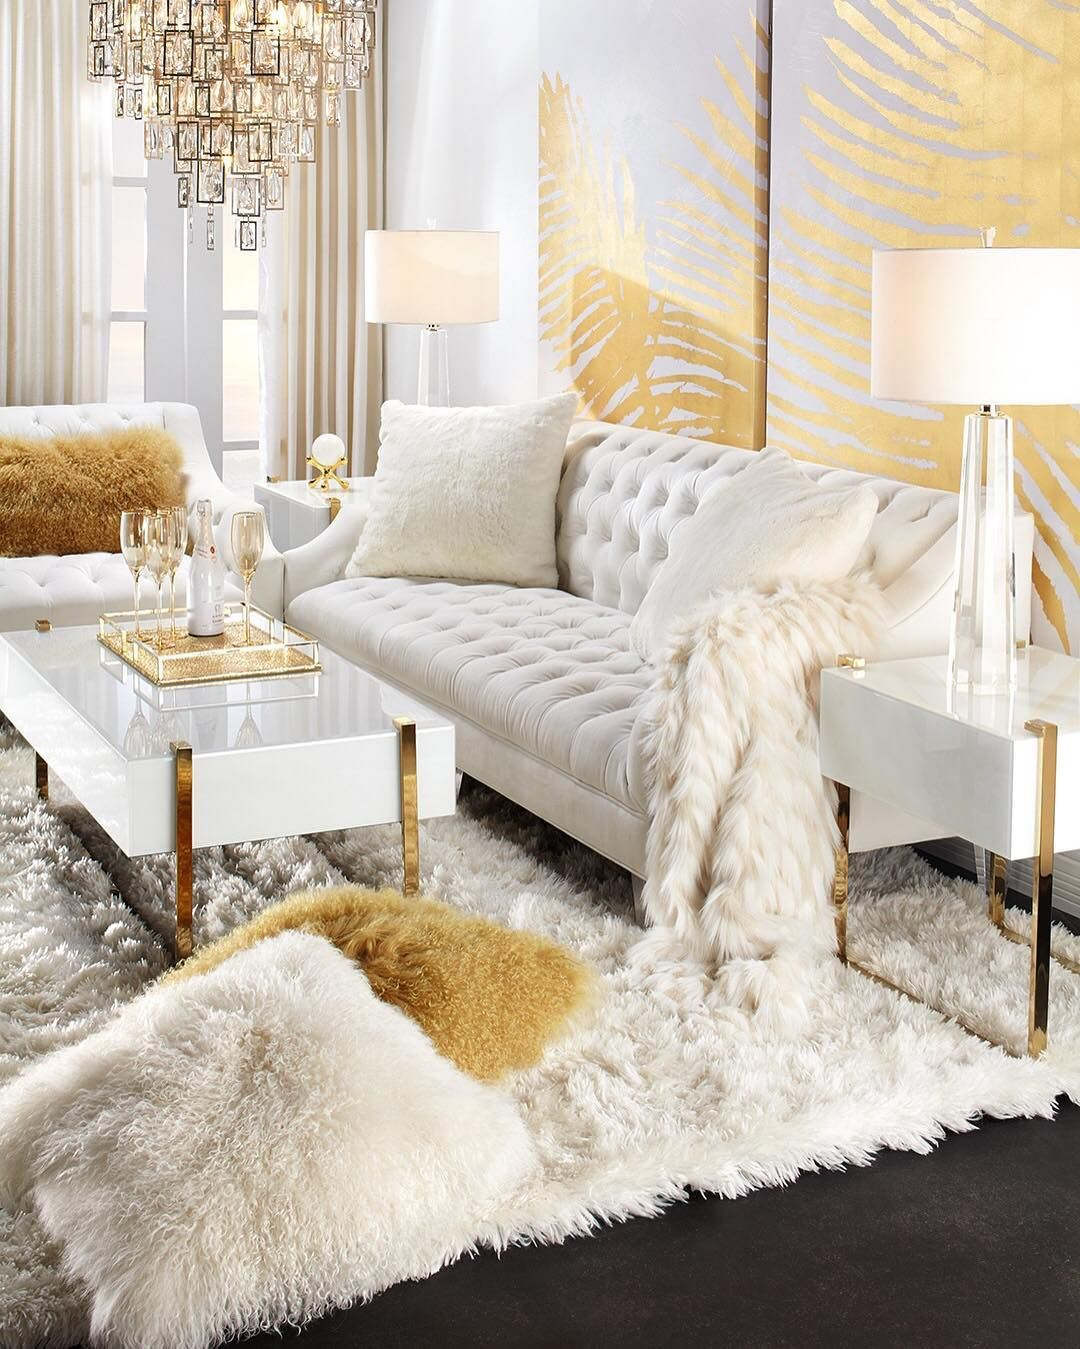 12 5k Likes 98 Comments Z Gallerie Zgallerie On Instagram We 39 Re Ready For Our Close Up Ou Glam Living Room Decor Gold Living Room Glam Living Room